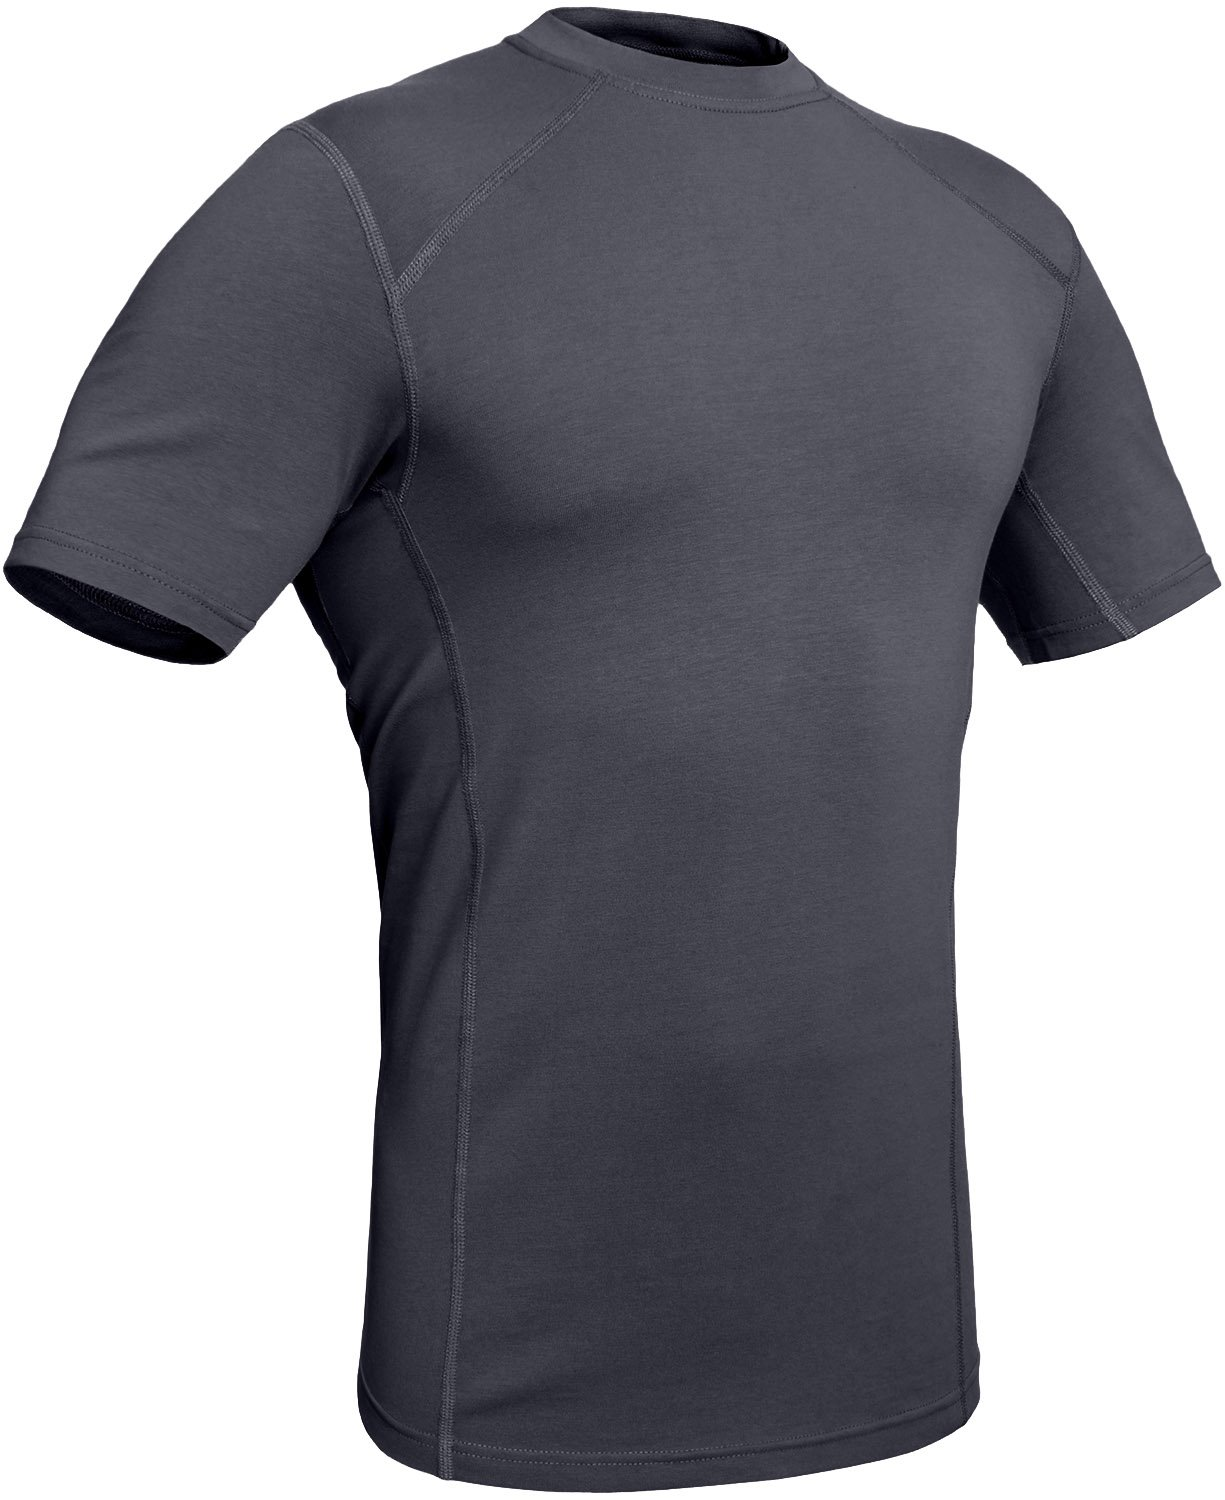 281Z Military Stretch Cotton Underwear T-Shirt - Tactical Hiking Outdoor - Punisher Combat Line (Graphite, XX-Large)